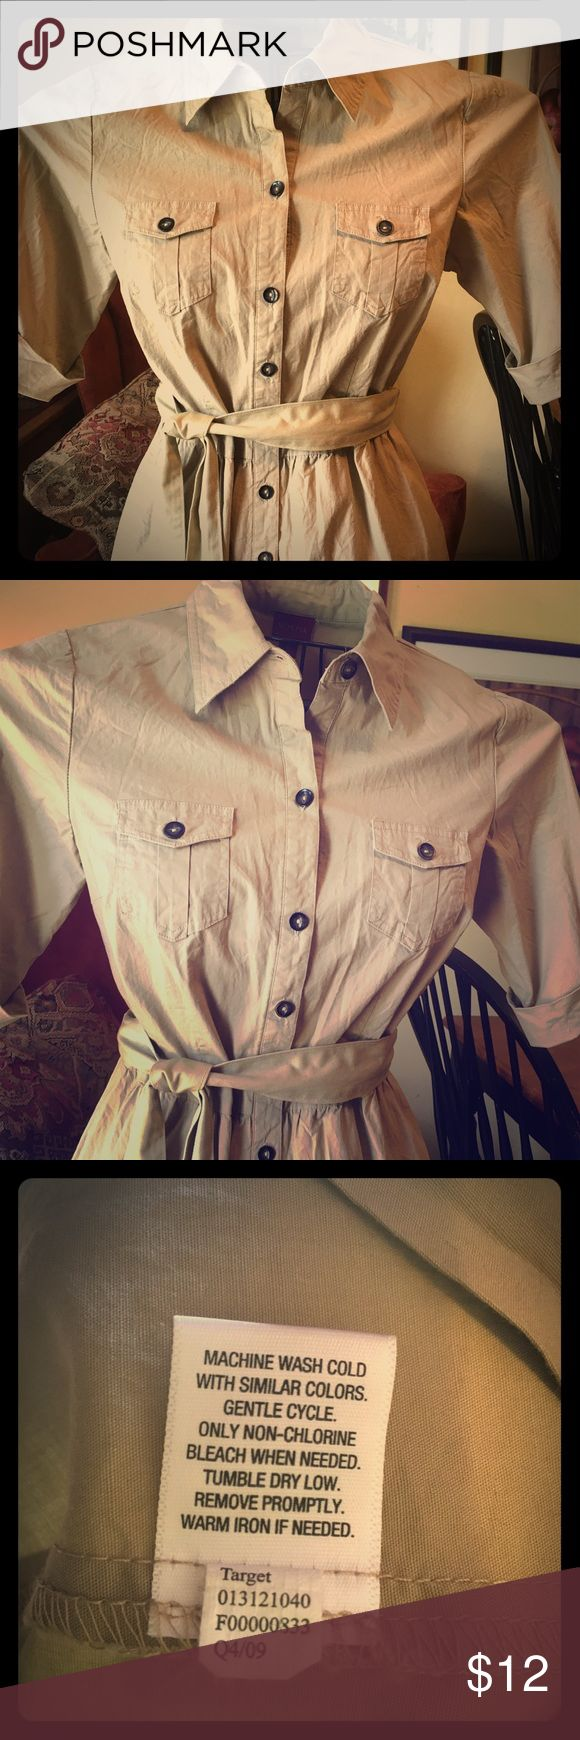 Merona Khaki Shirt Dress ~ Size Medium! Merona Khaki Shirt Dress ~ Size Medium ~ Button-front and removable belt ~ Worn and washed once, and a bit wrinkled from hanging in the closet! Other than that, excellent condition!❤️ Merona Dresses Midi